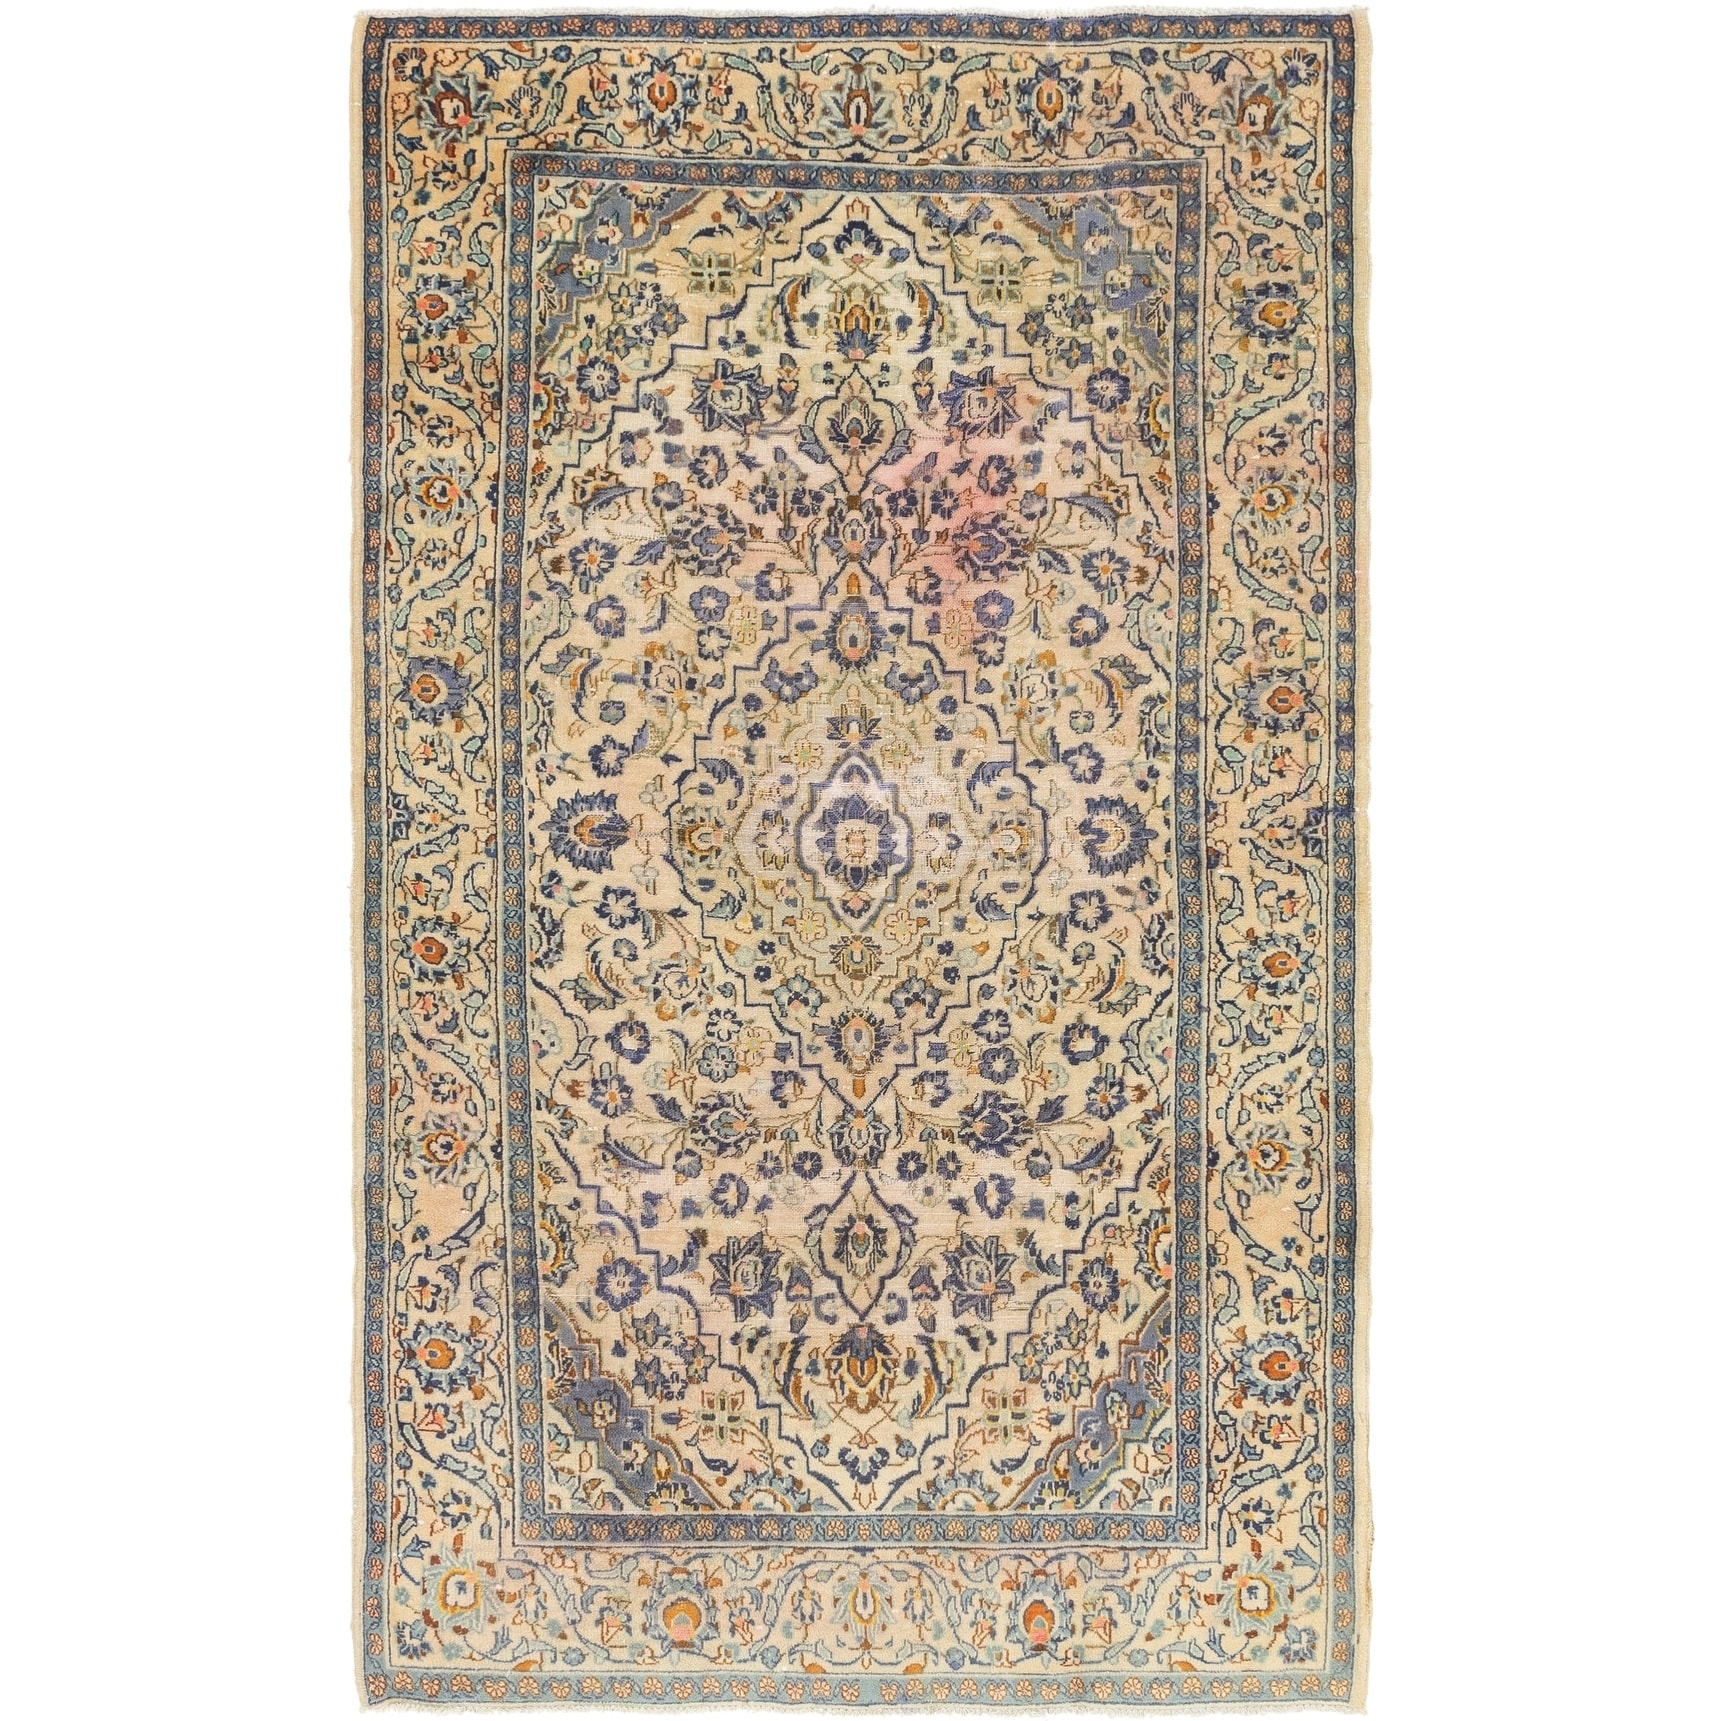 Hand Knotted Kashan Semi Antique Wool Area Rug - 4 10 x 8 3 (Beige - 4 10 x 8 3)